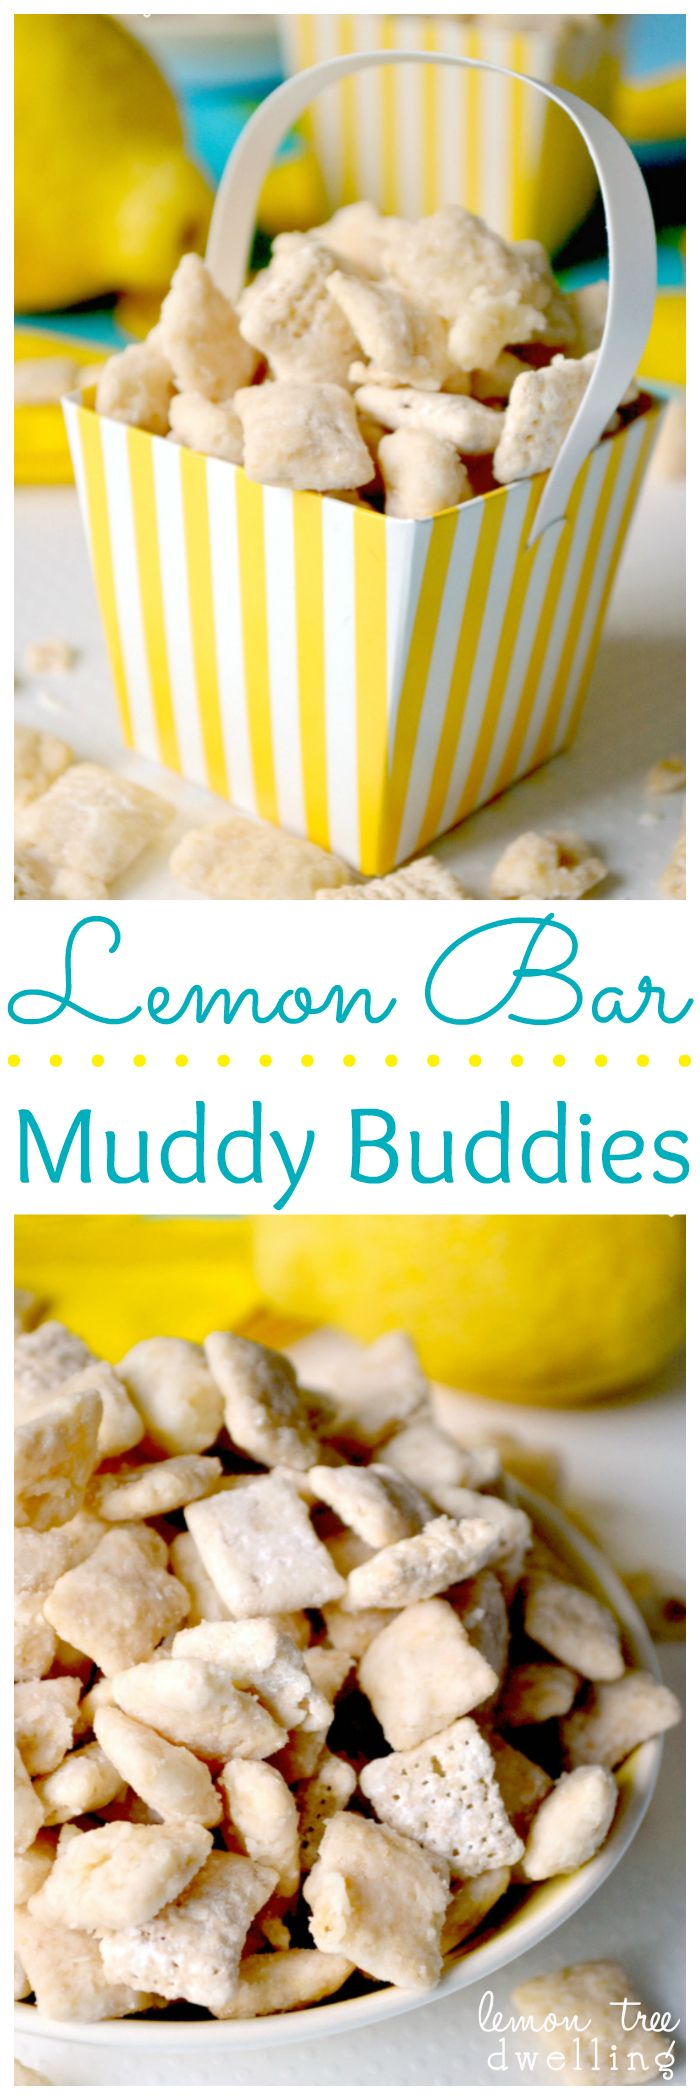 Lemon Bar Muddy Buddies. They taste just like real lemon bars!